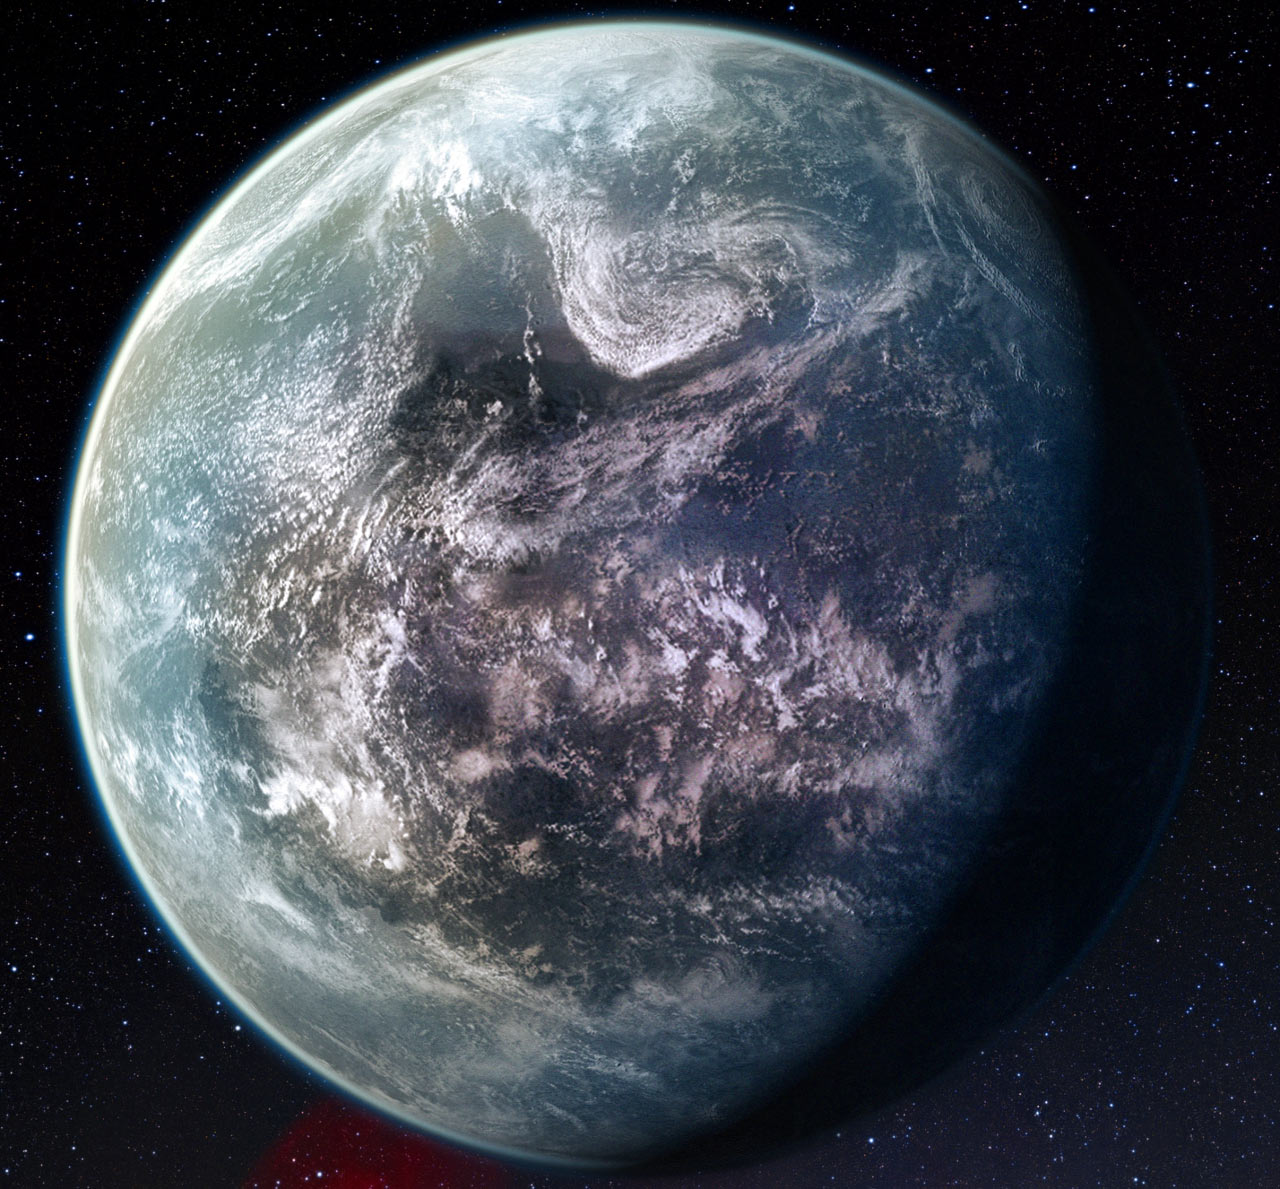 alien water planet - photo #14